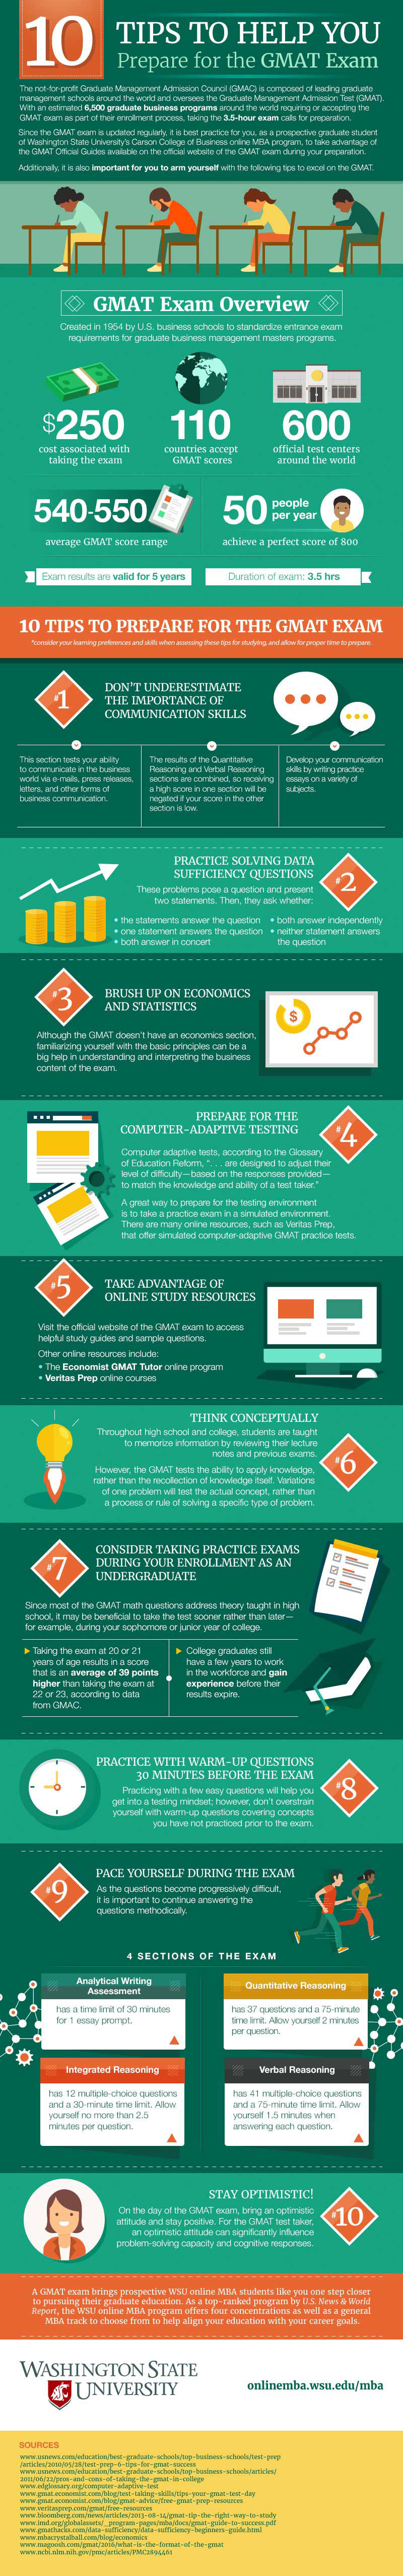 10 Tips to Help You Prepare for the GMAT infographic